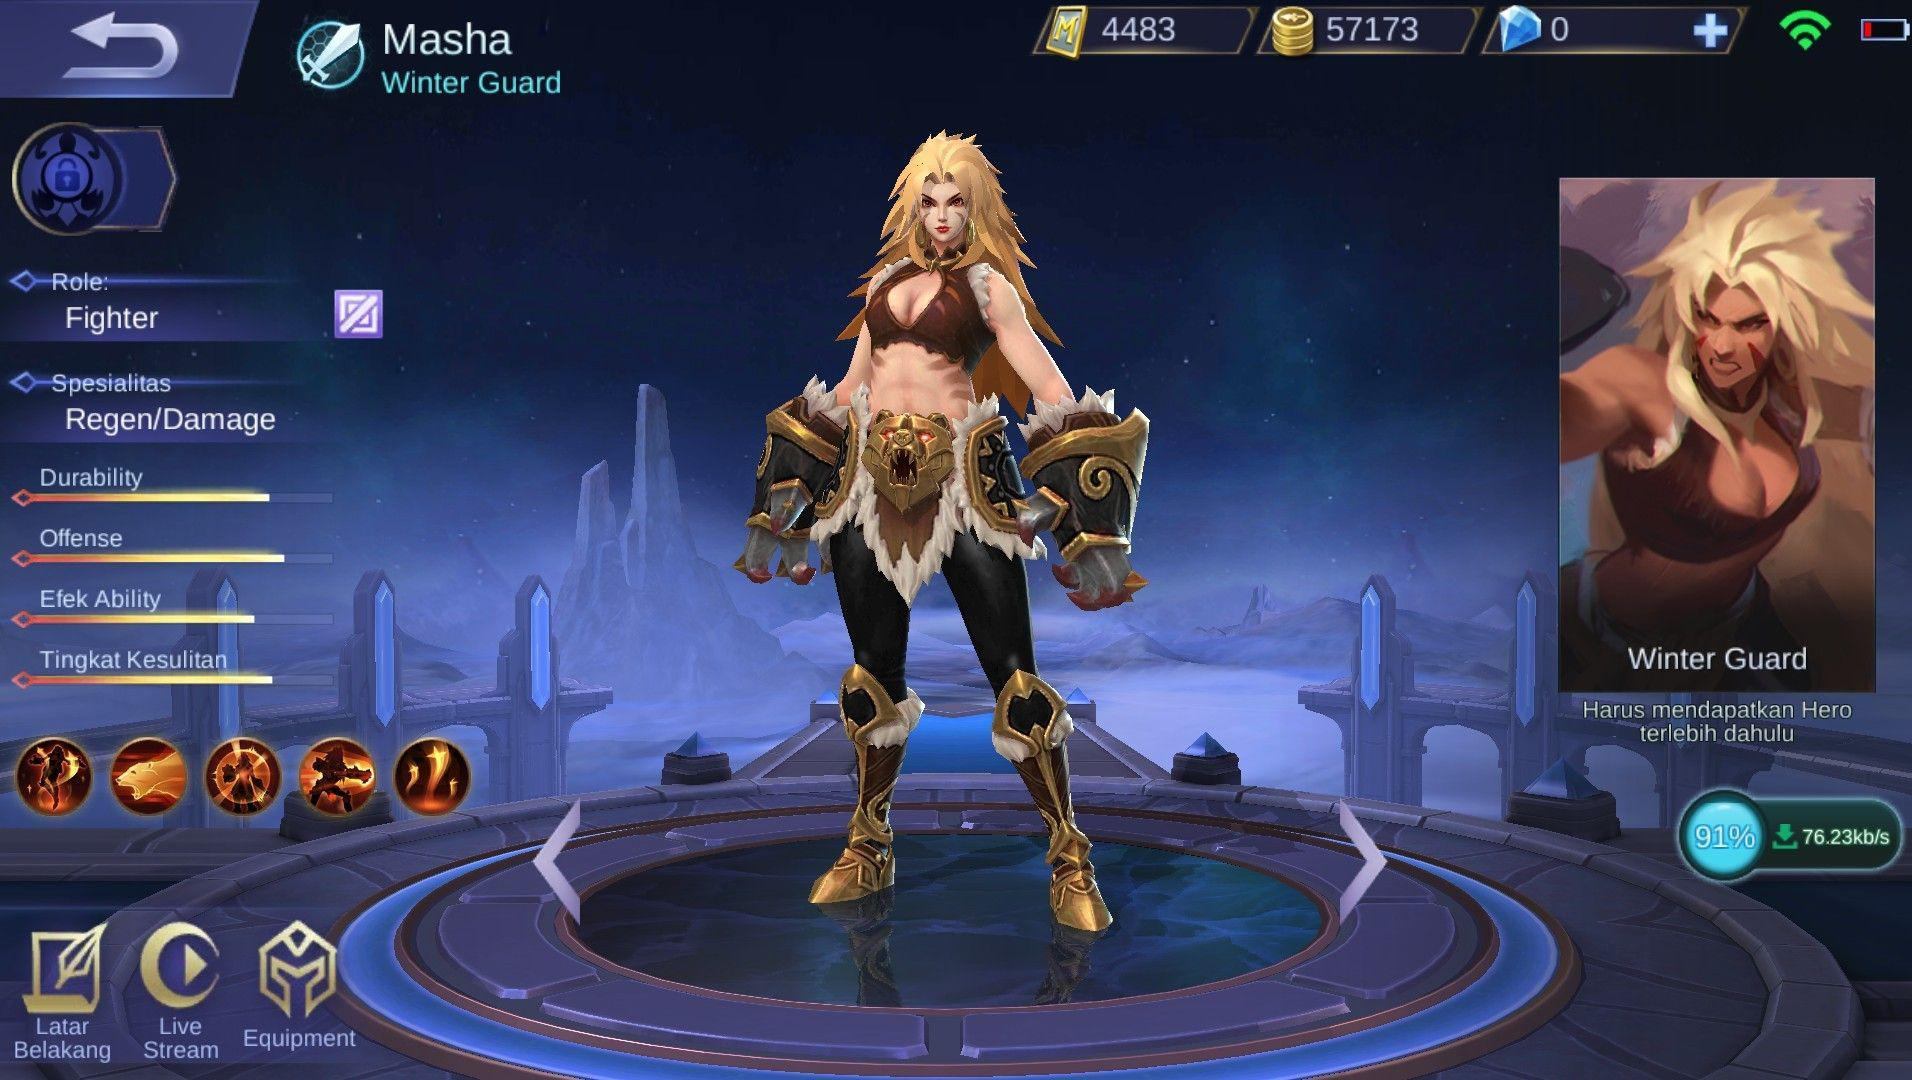 Masha Hero Fighter Anyar Rasa Tank Di Game ESports Mobile